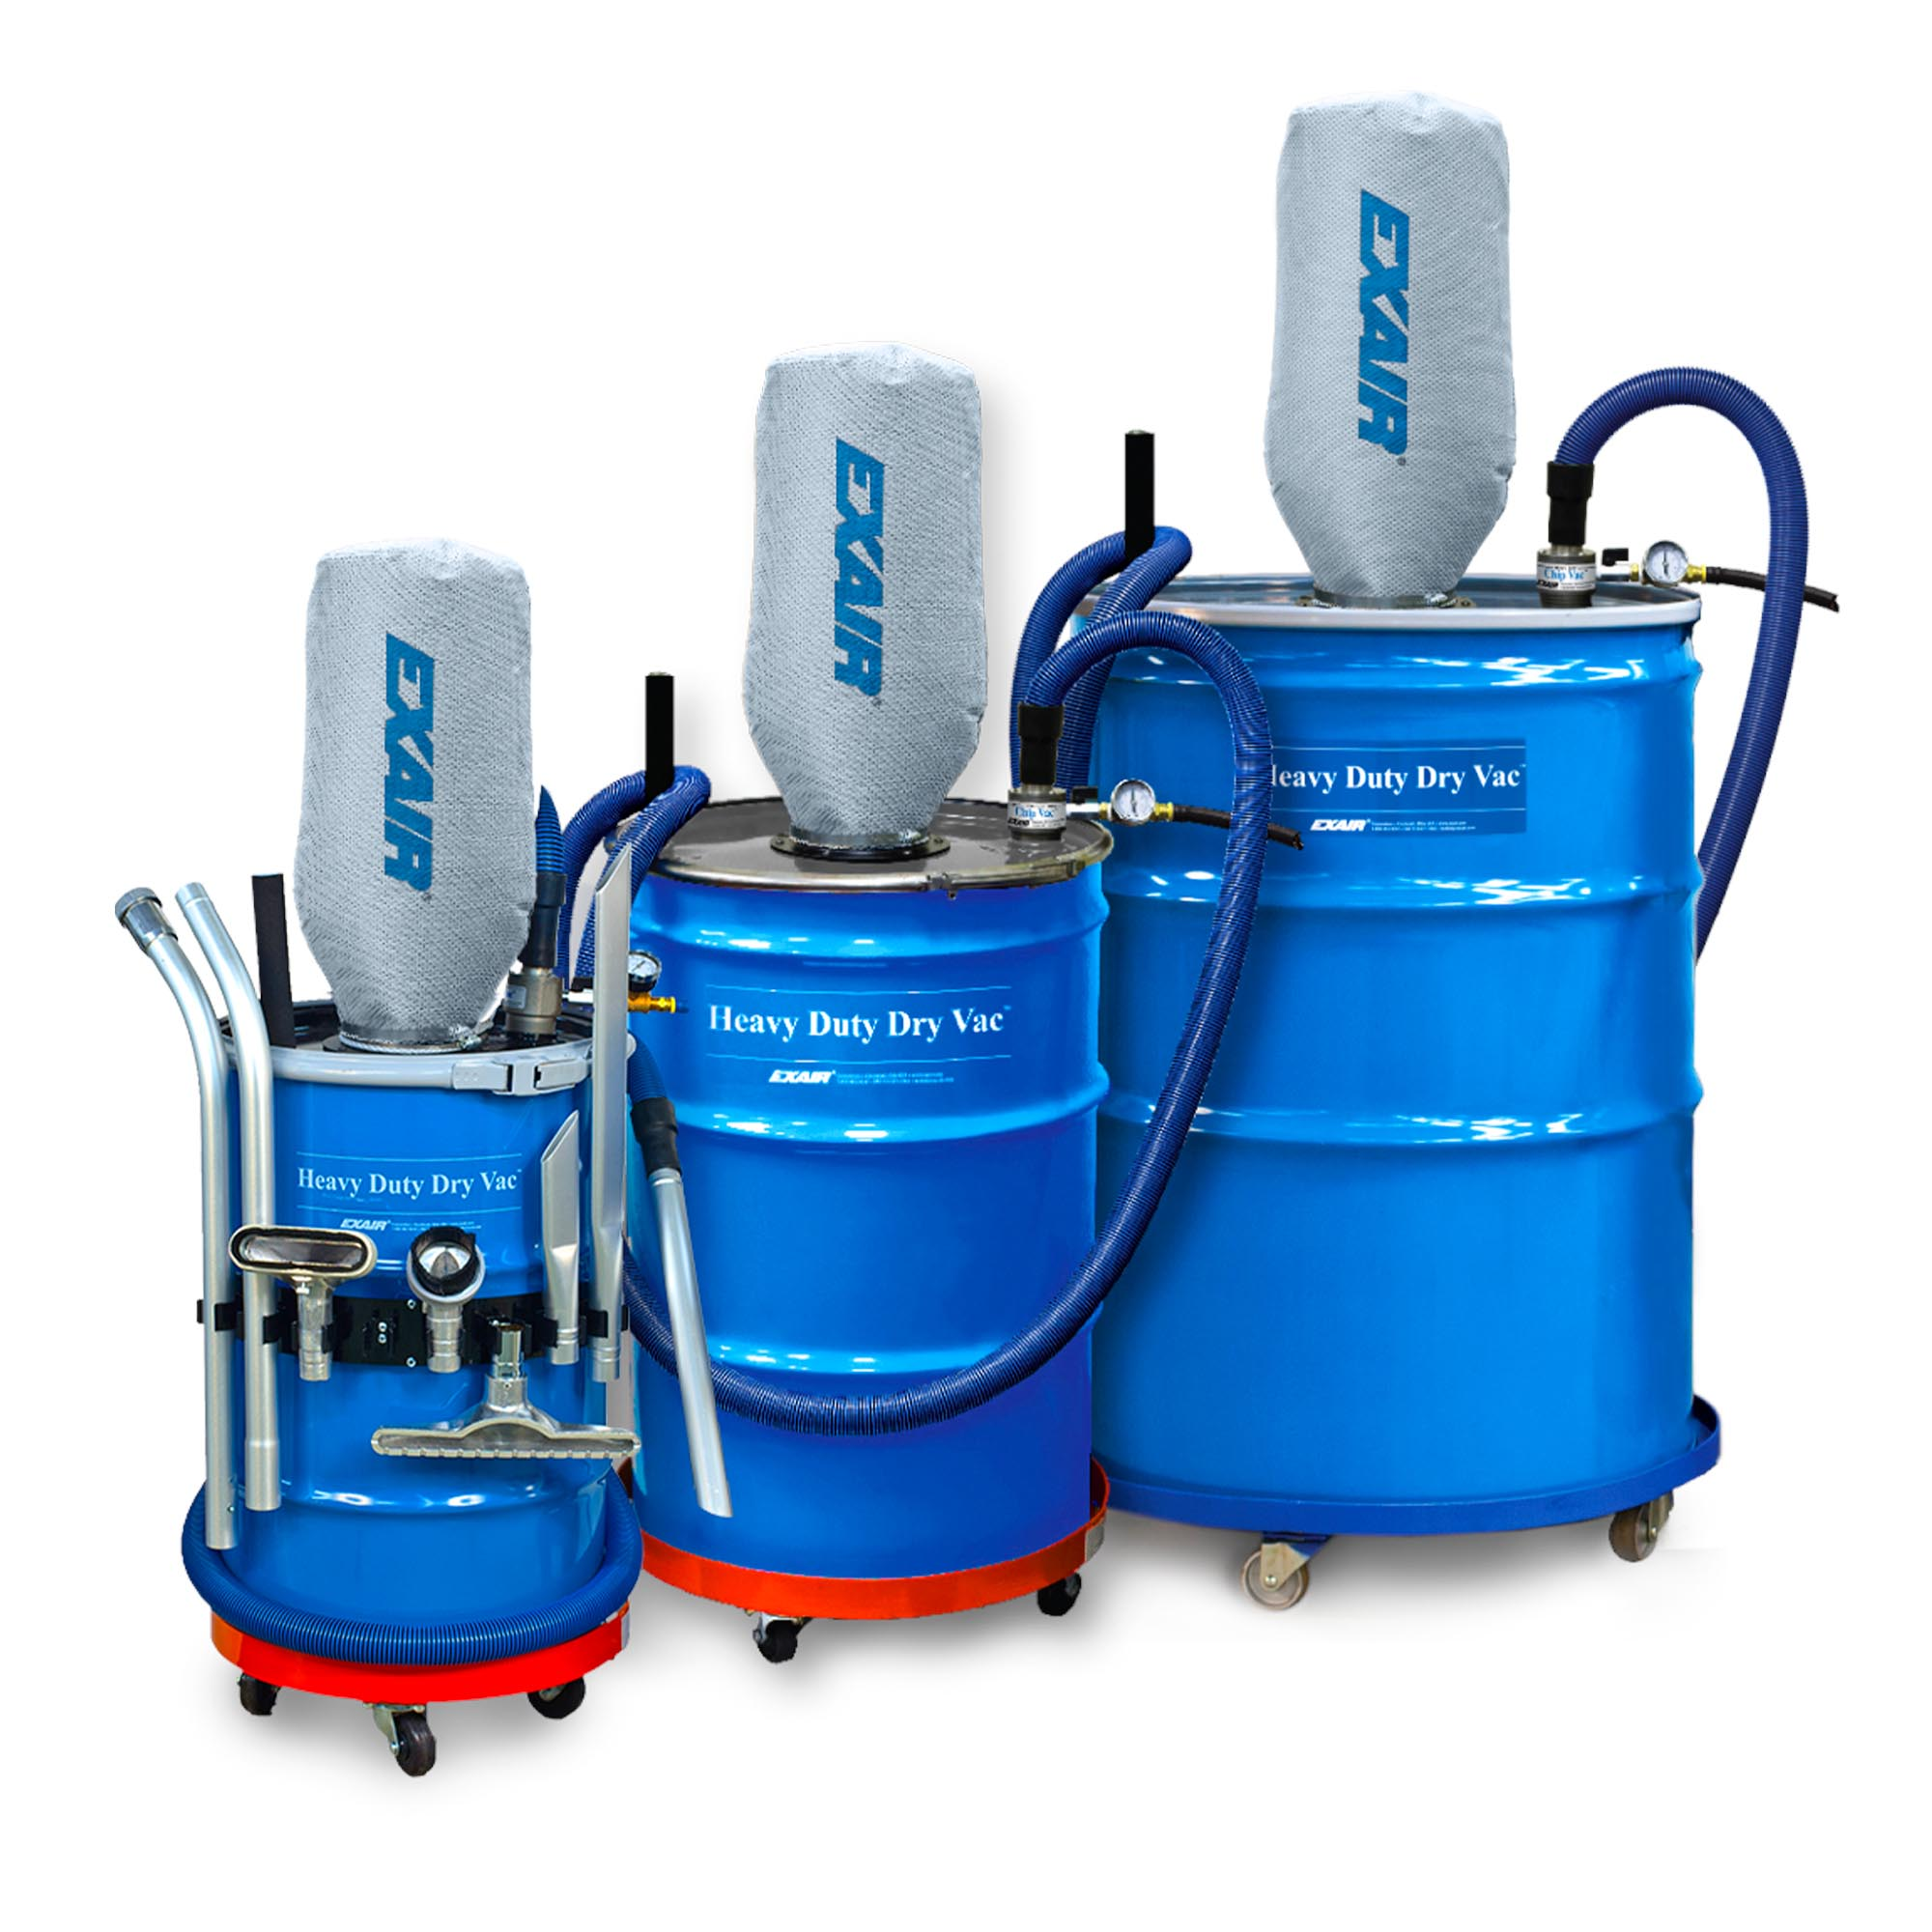 Heavy Duty Dry Vac are available in 30, 55 and 110 gallon sizes.